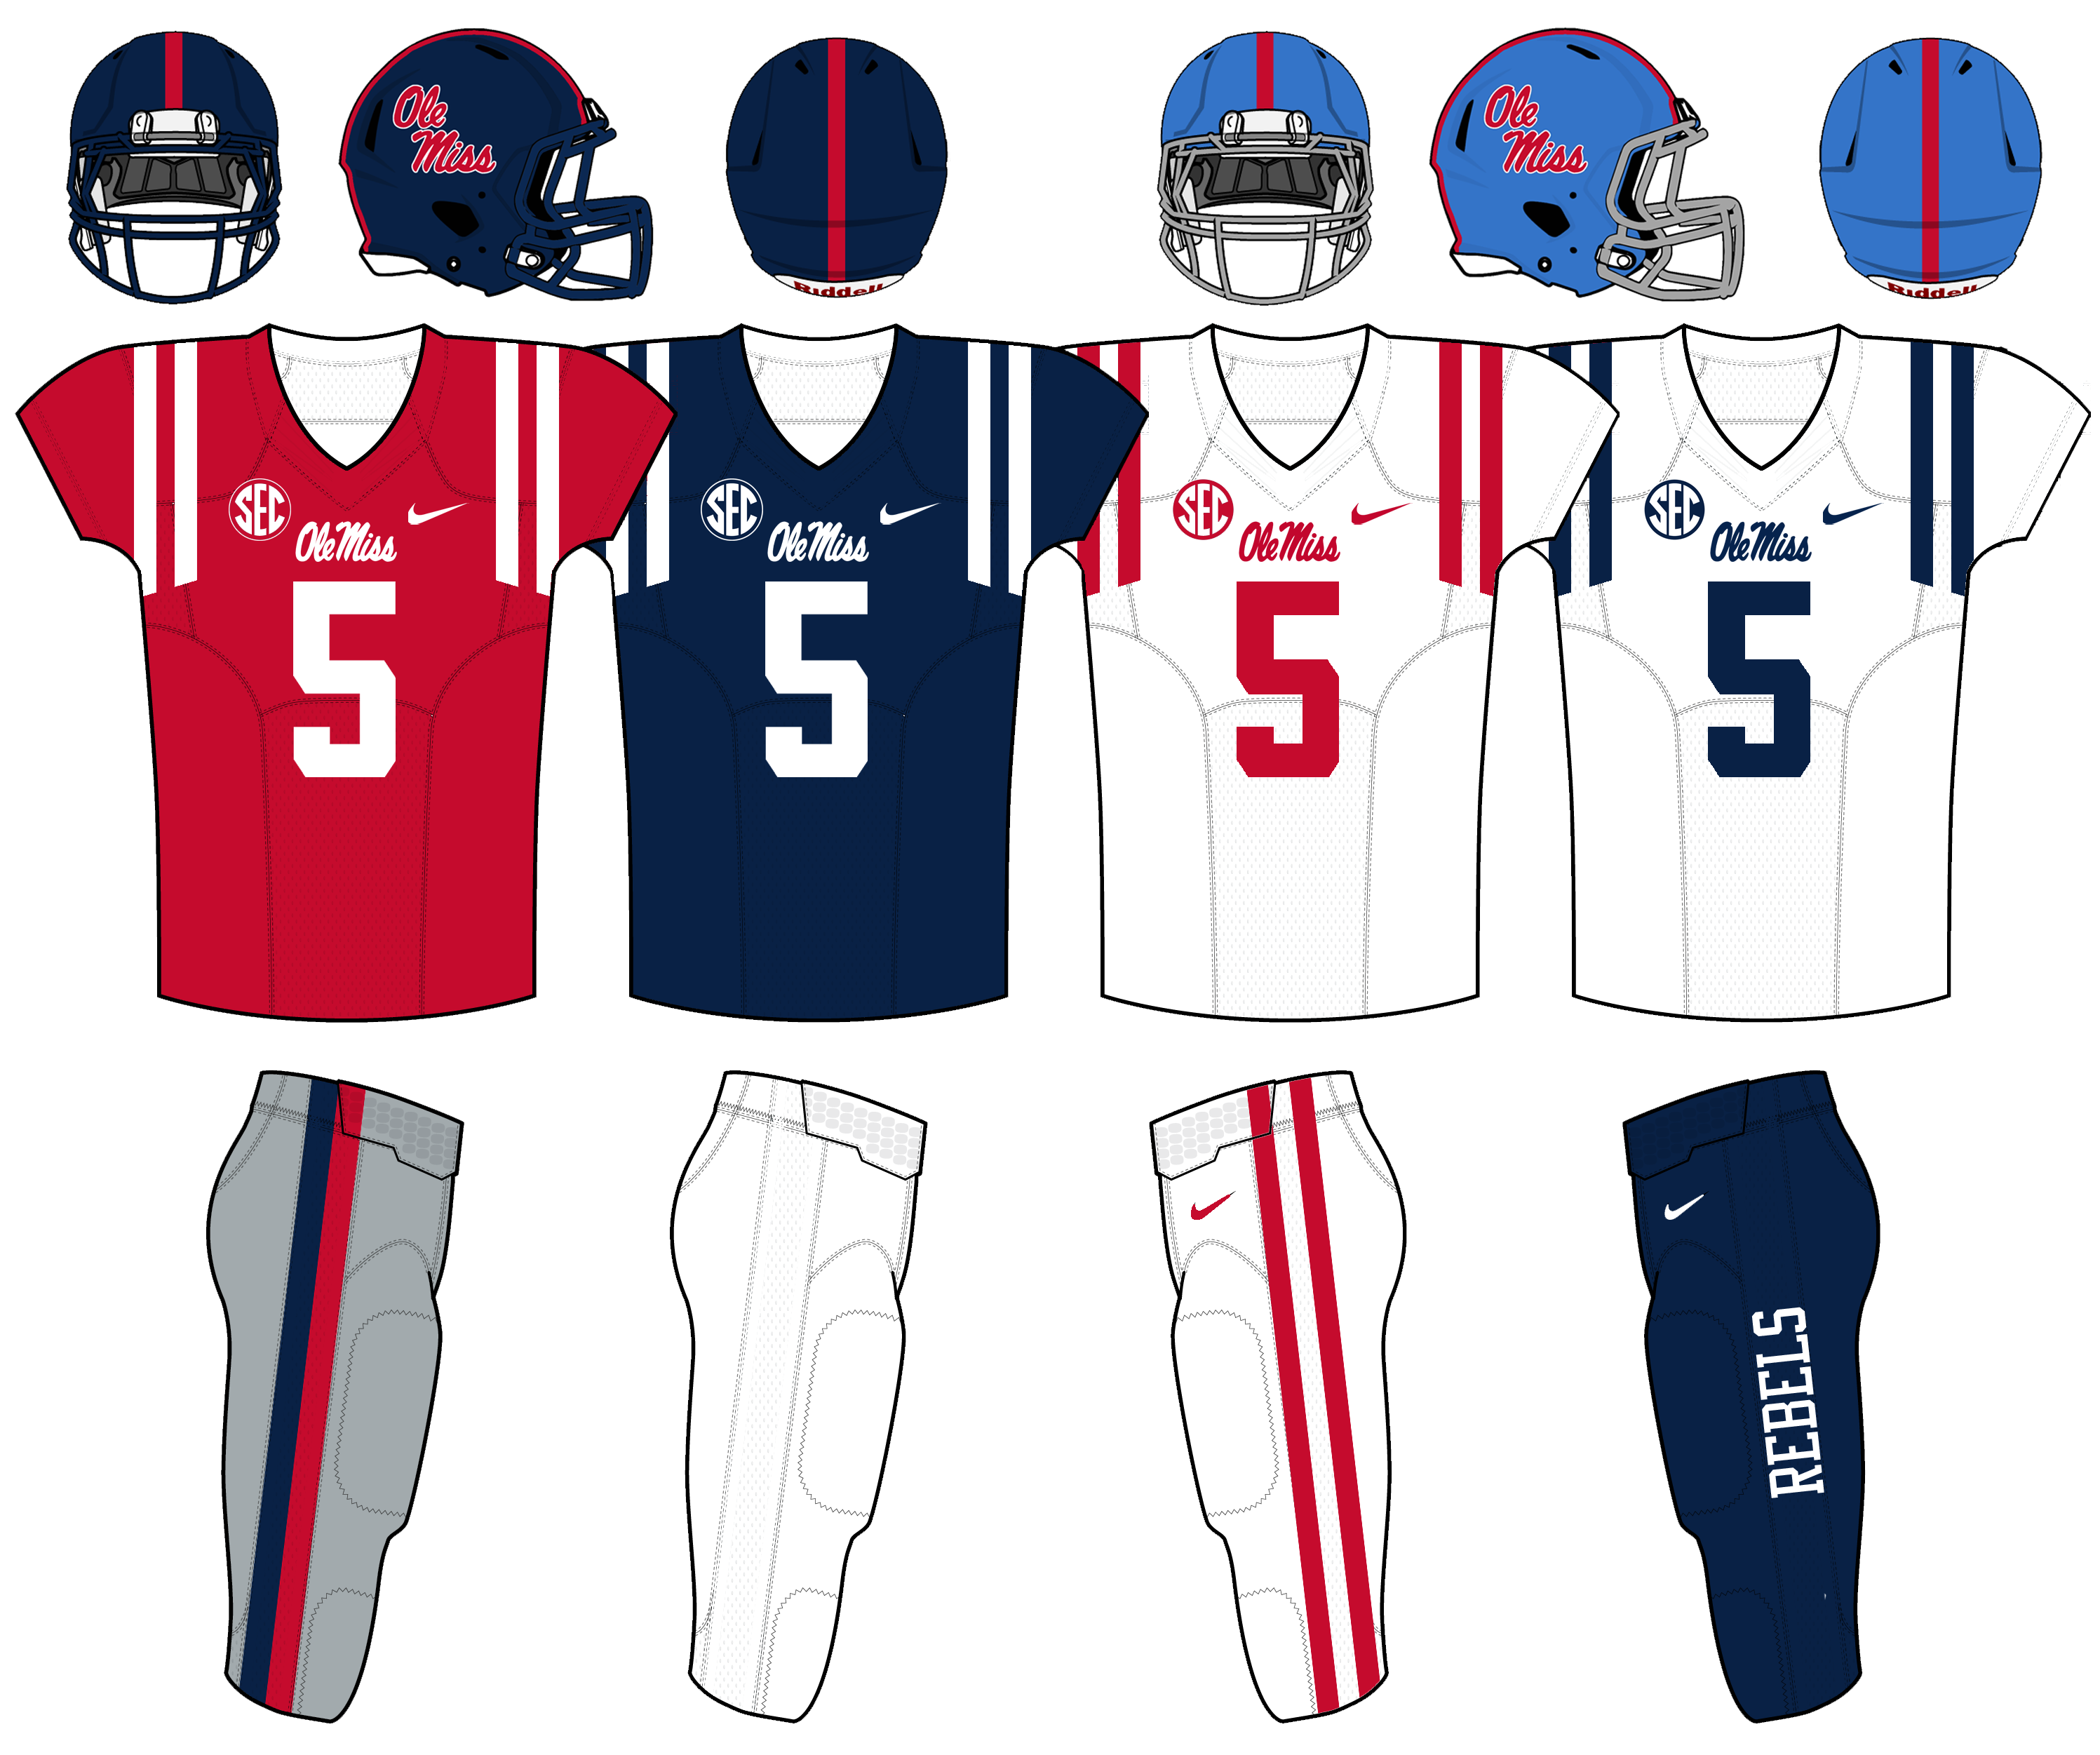 size 40 a7d1b f0df2 File:Ole Miss Football Uniforms as of October 5, 2015.png ...